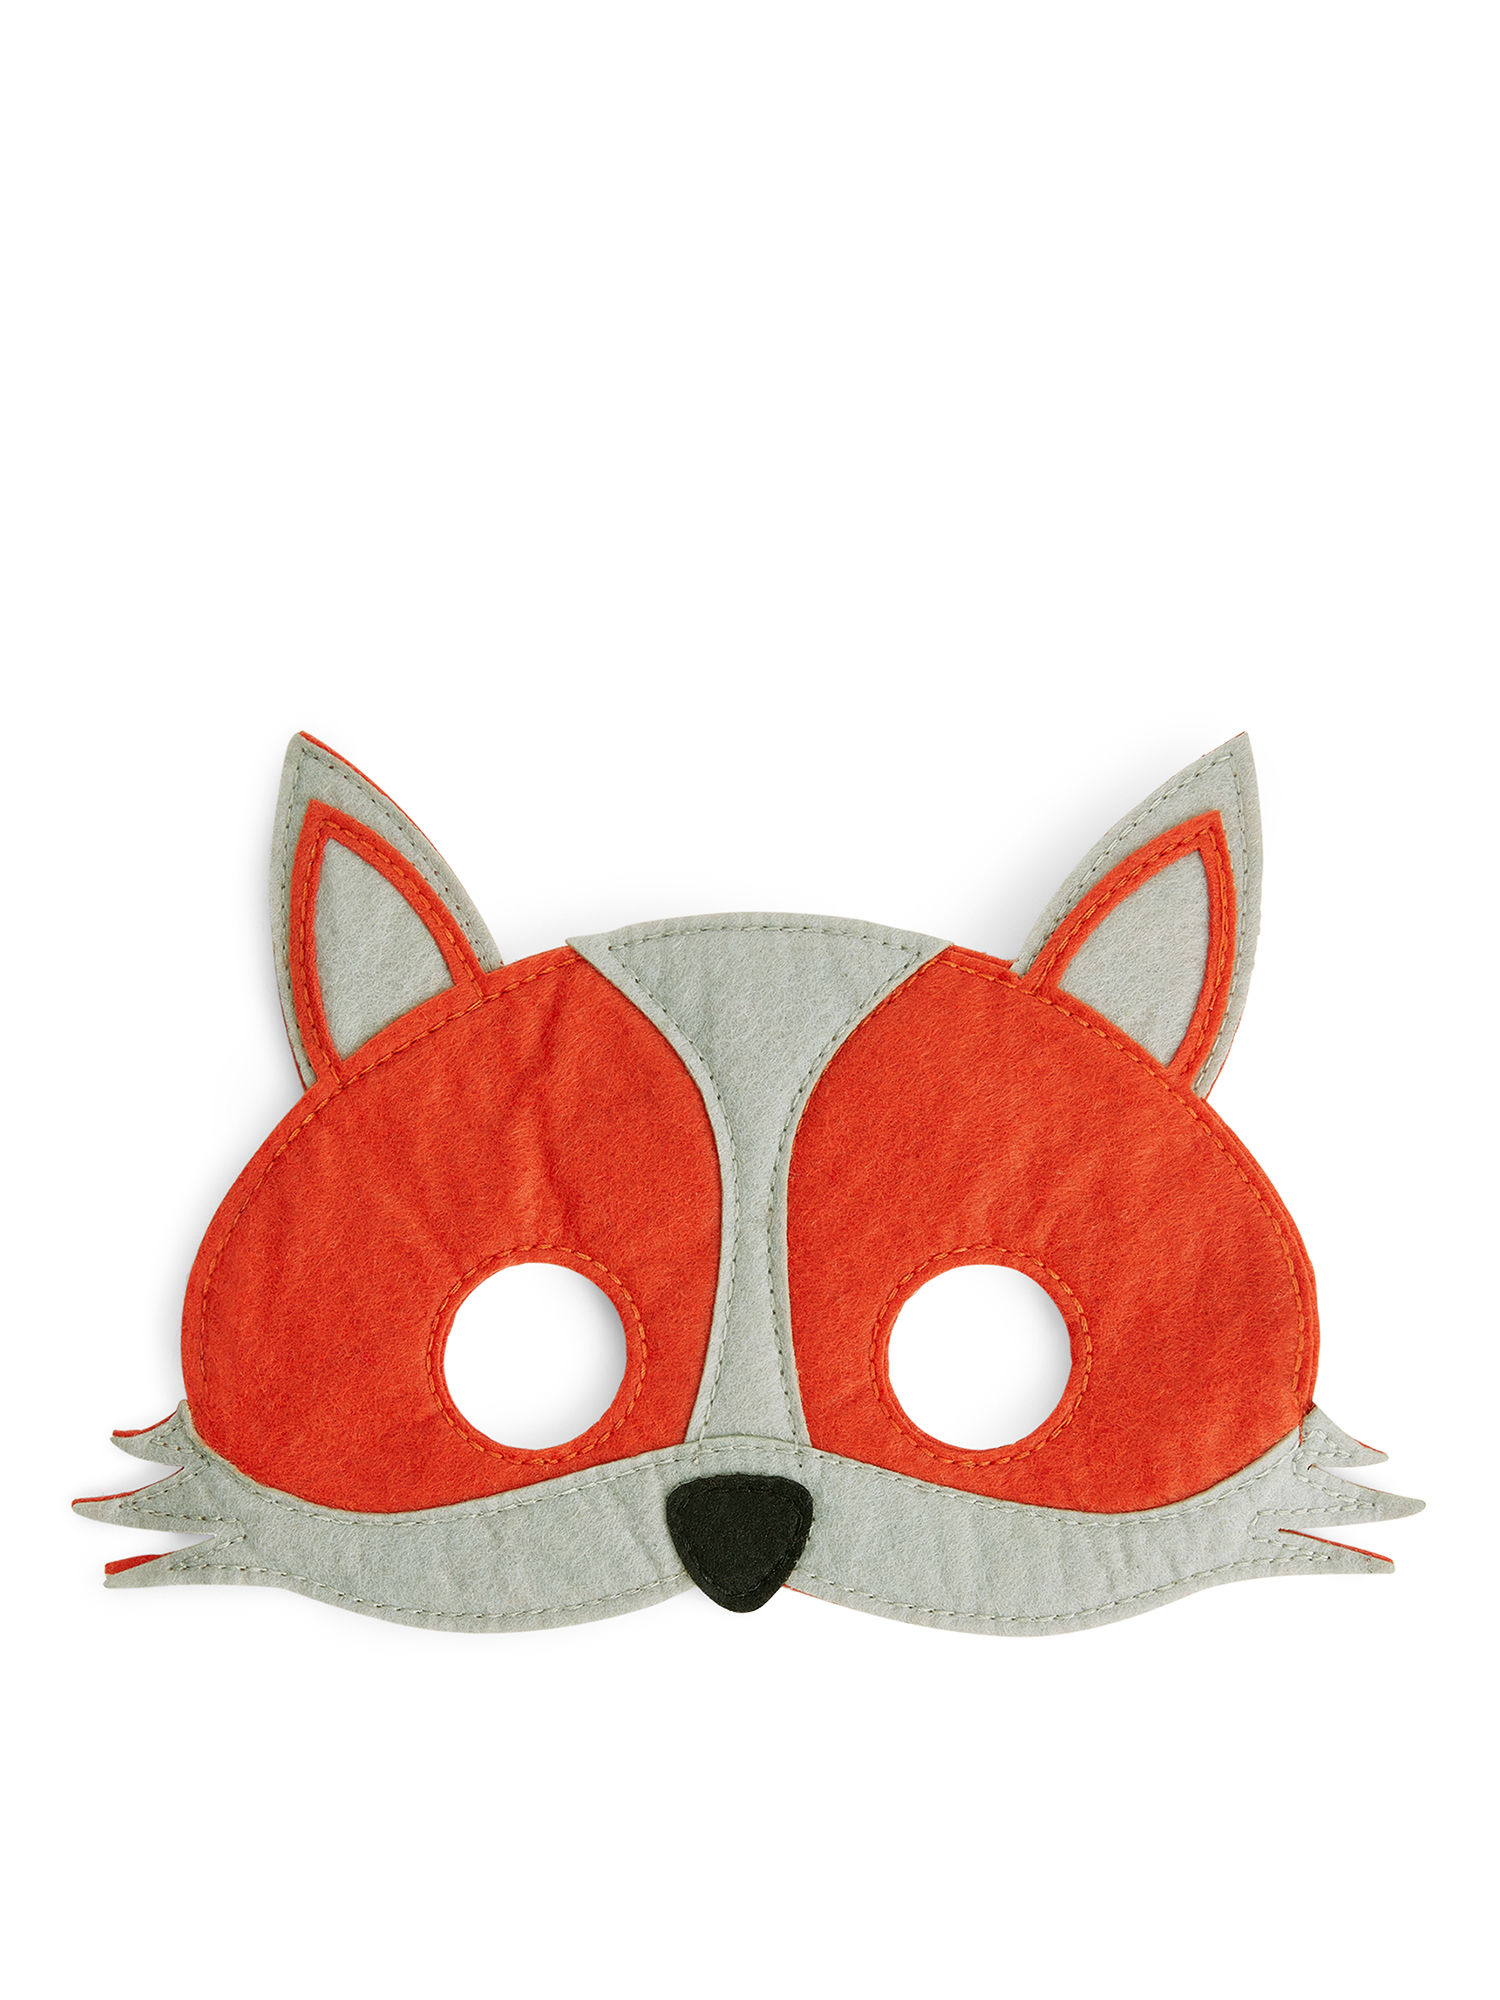 Fabric Swatch image of Arket animal mask in orange